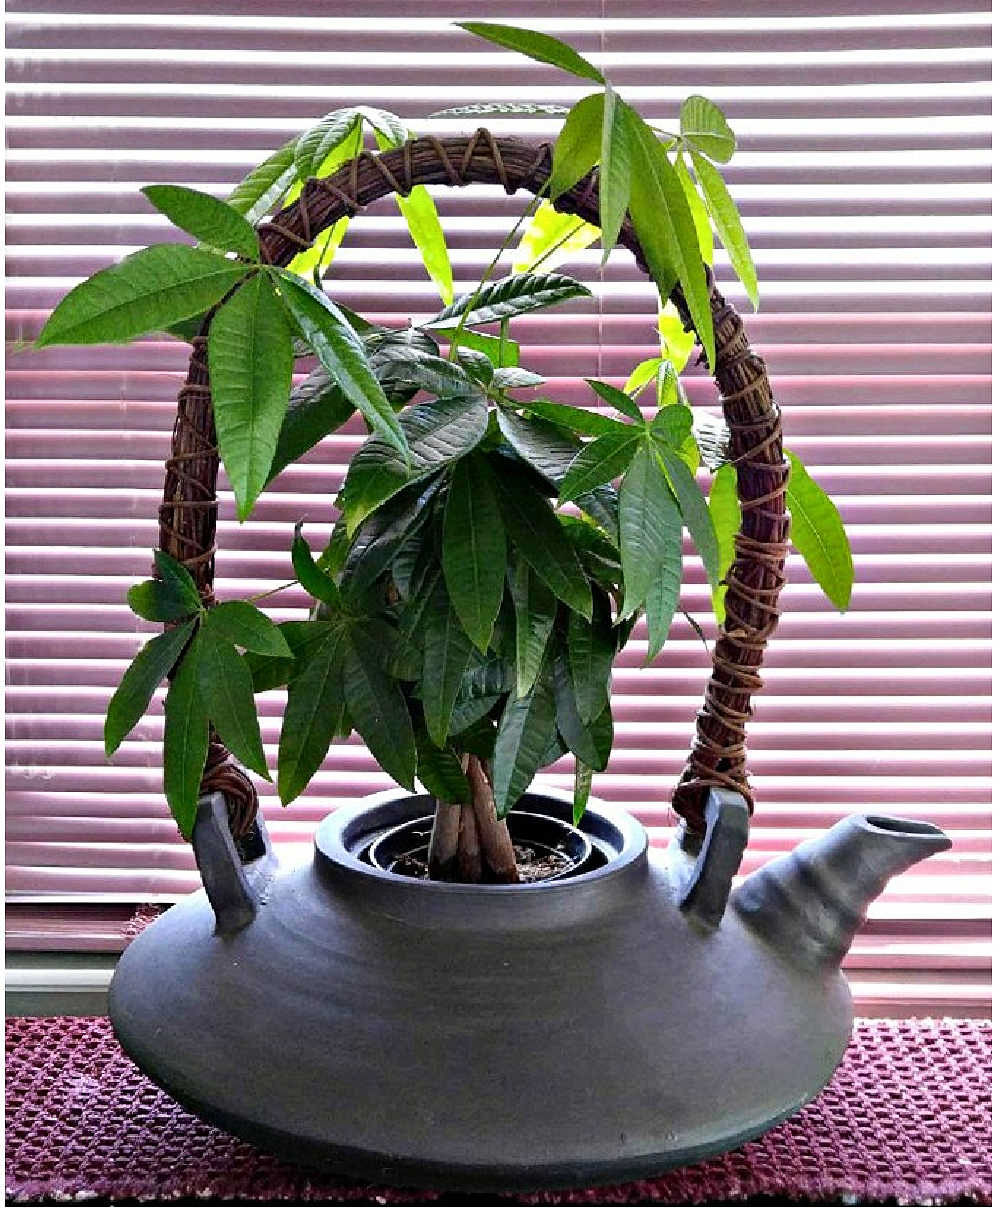 Braided money tree plant in a large jug planter in front of a pink shade.